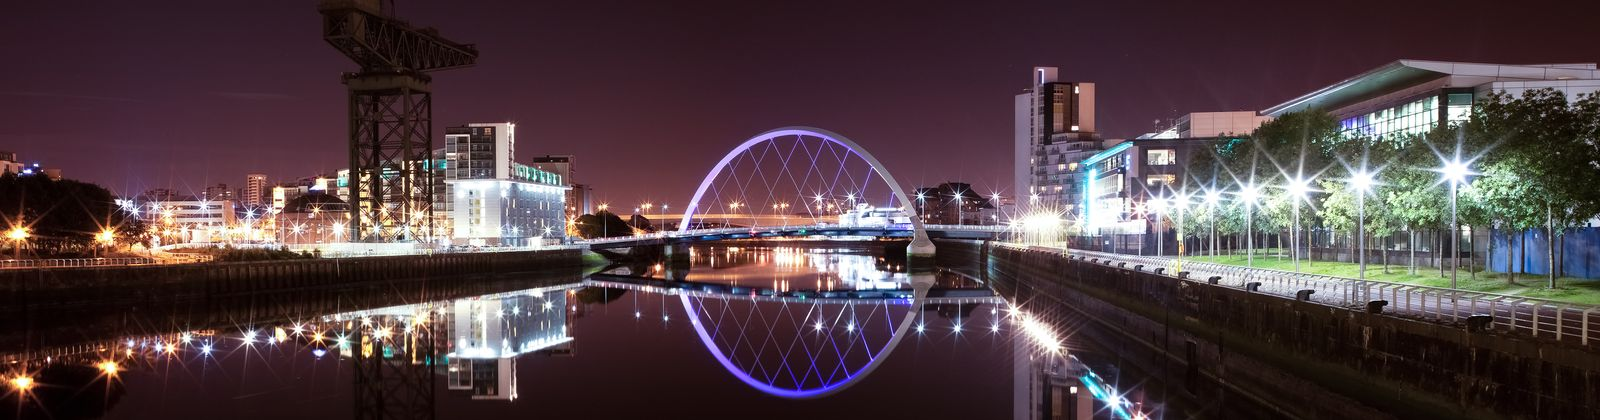 Unmissable Things To See And Do In Glasgow - 11 best things to see and do in edinburgh